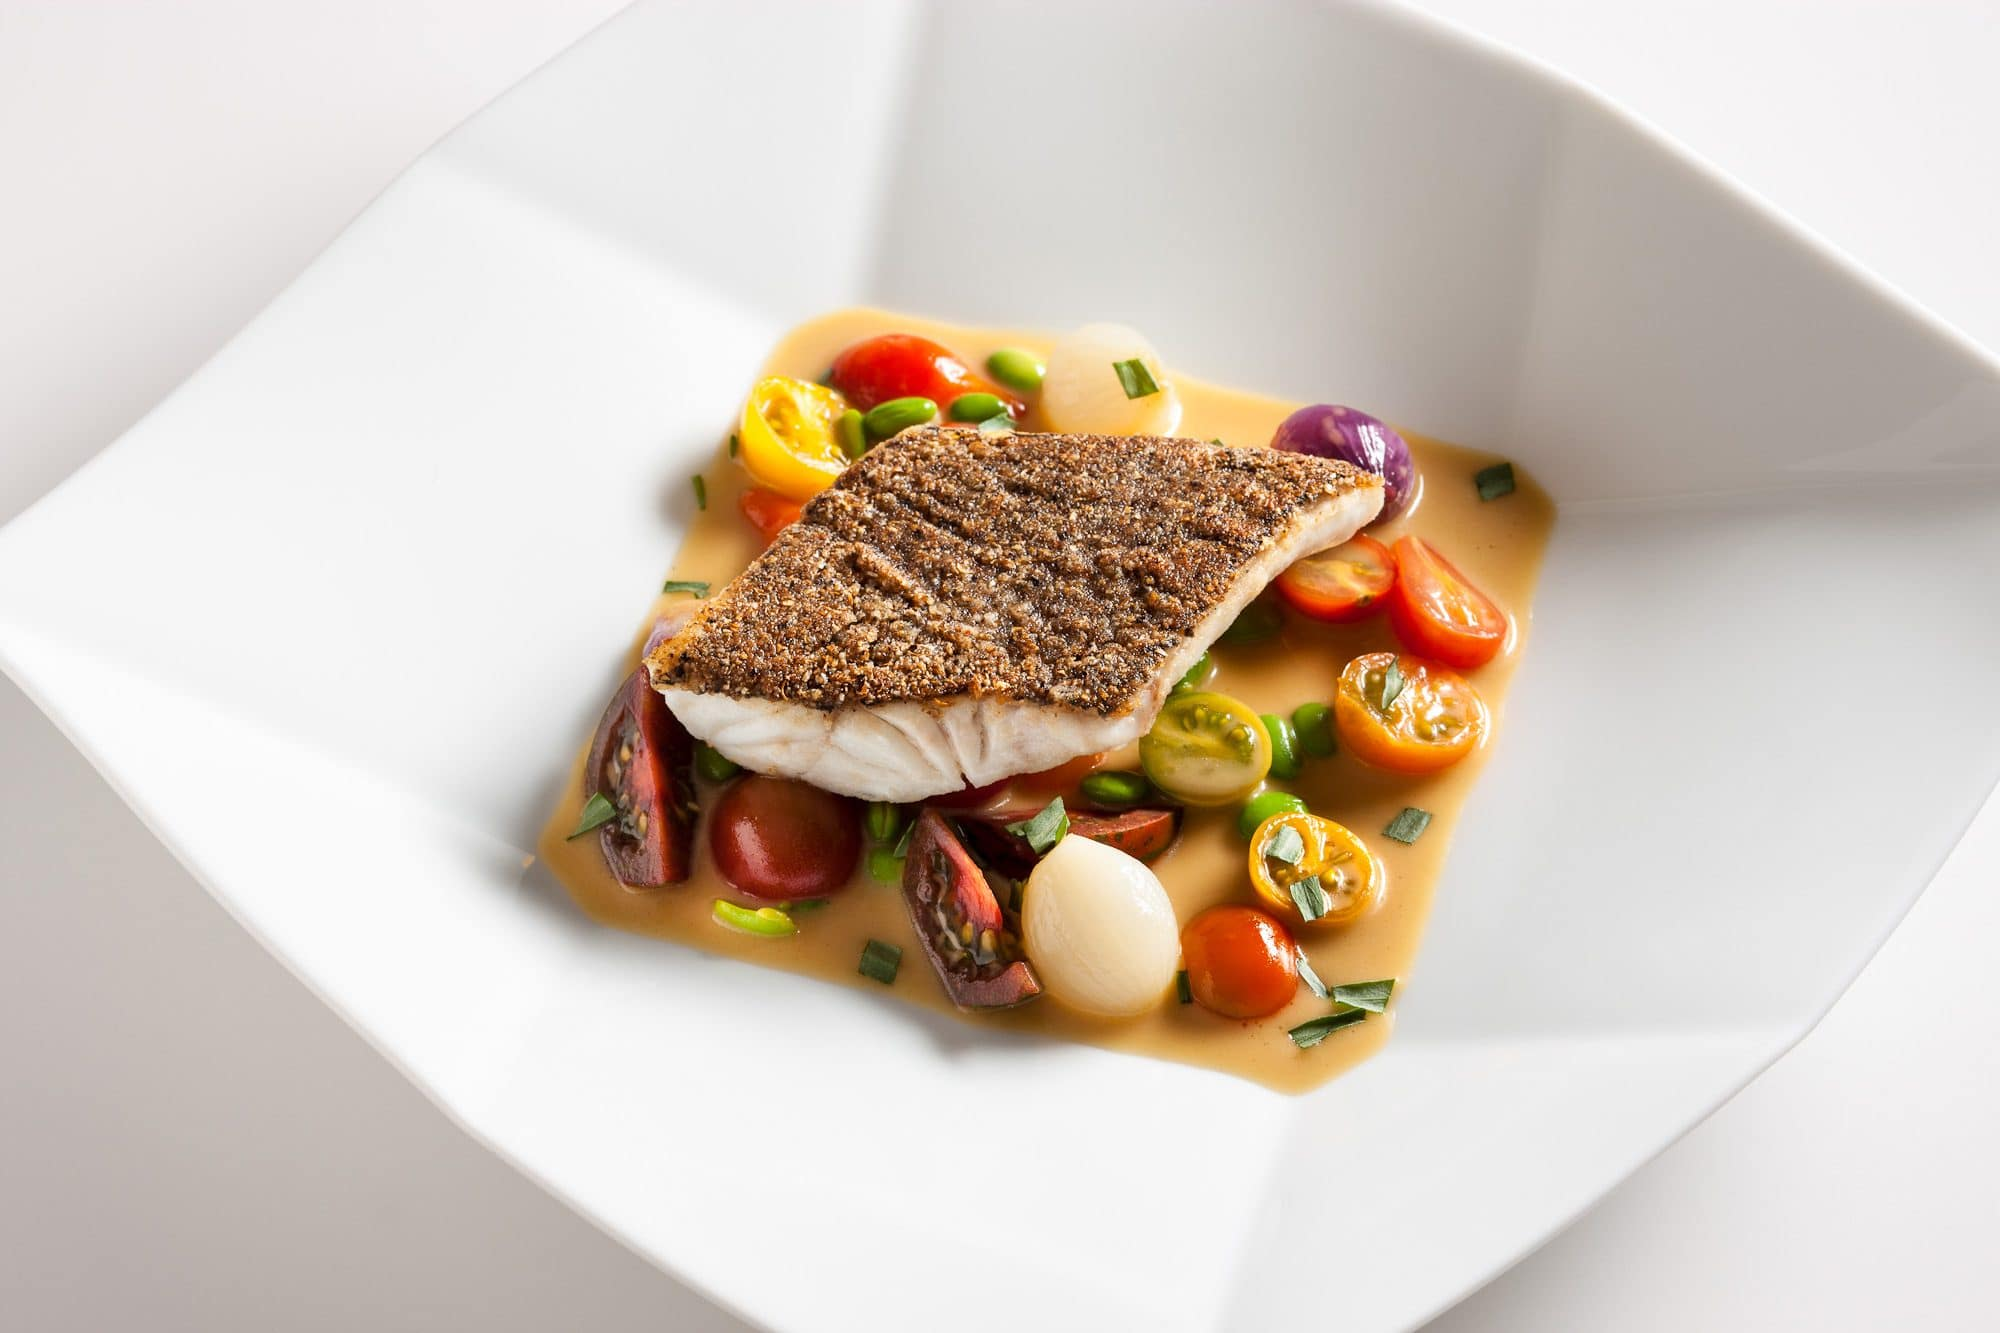 A fish dish with pan-fried fish and tomatoes